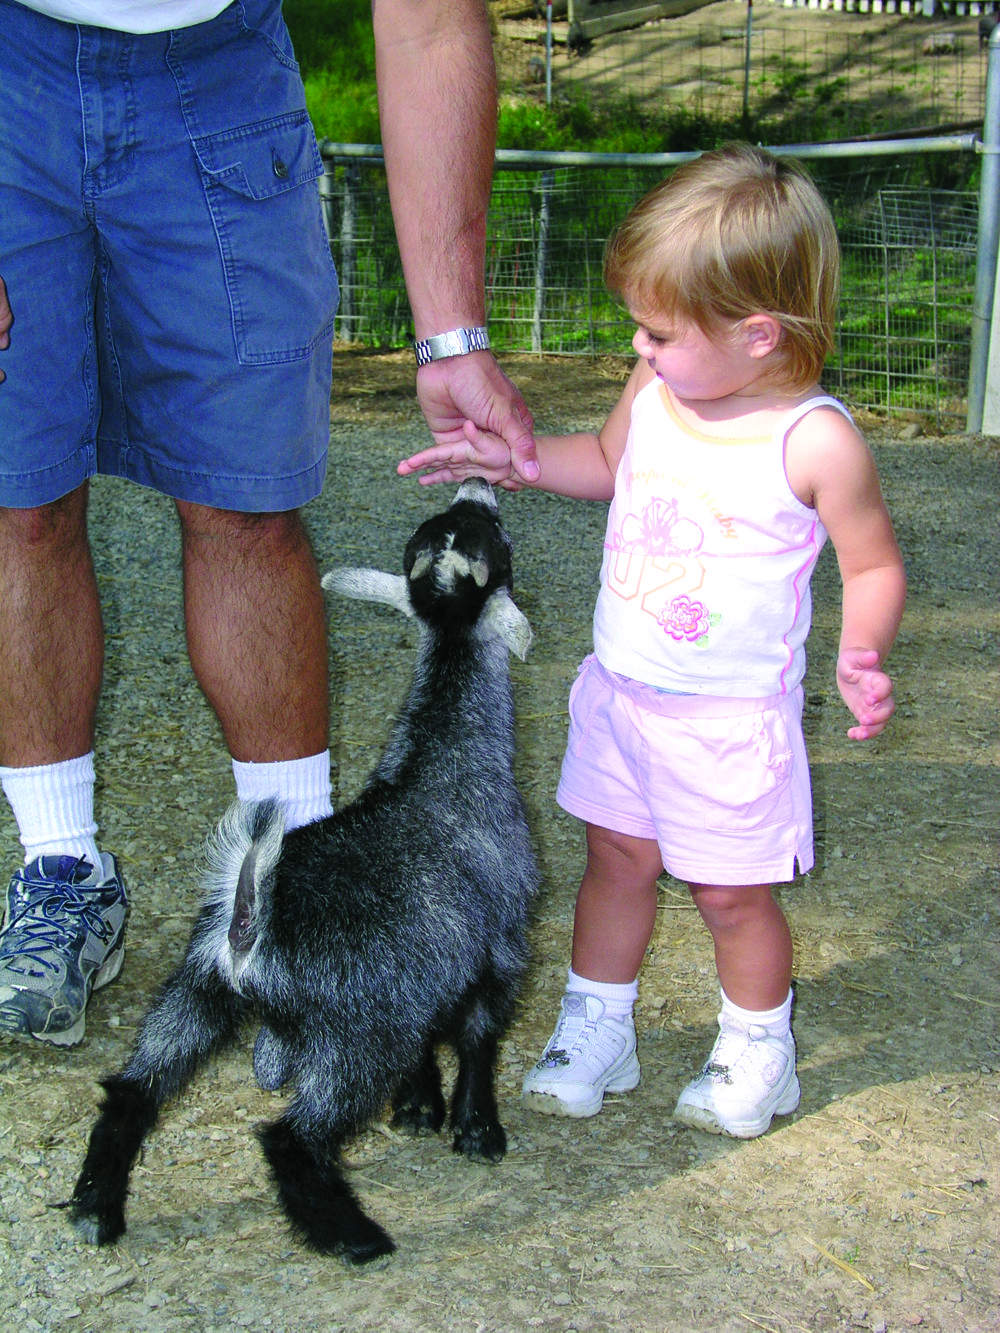 Get Up Close And Personal With All Kinds Of Animals At Rolling Ridge Ranch Amish Country Outdoors Adventure Outdoor Adventure